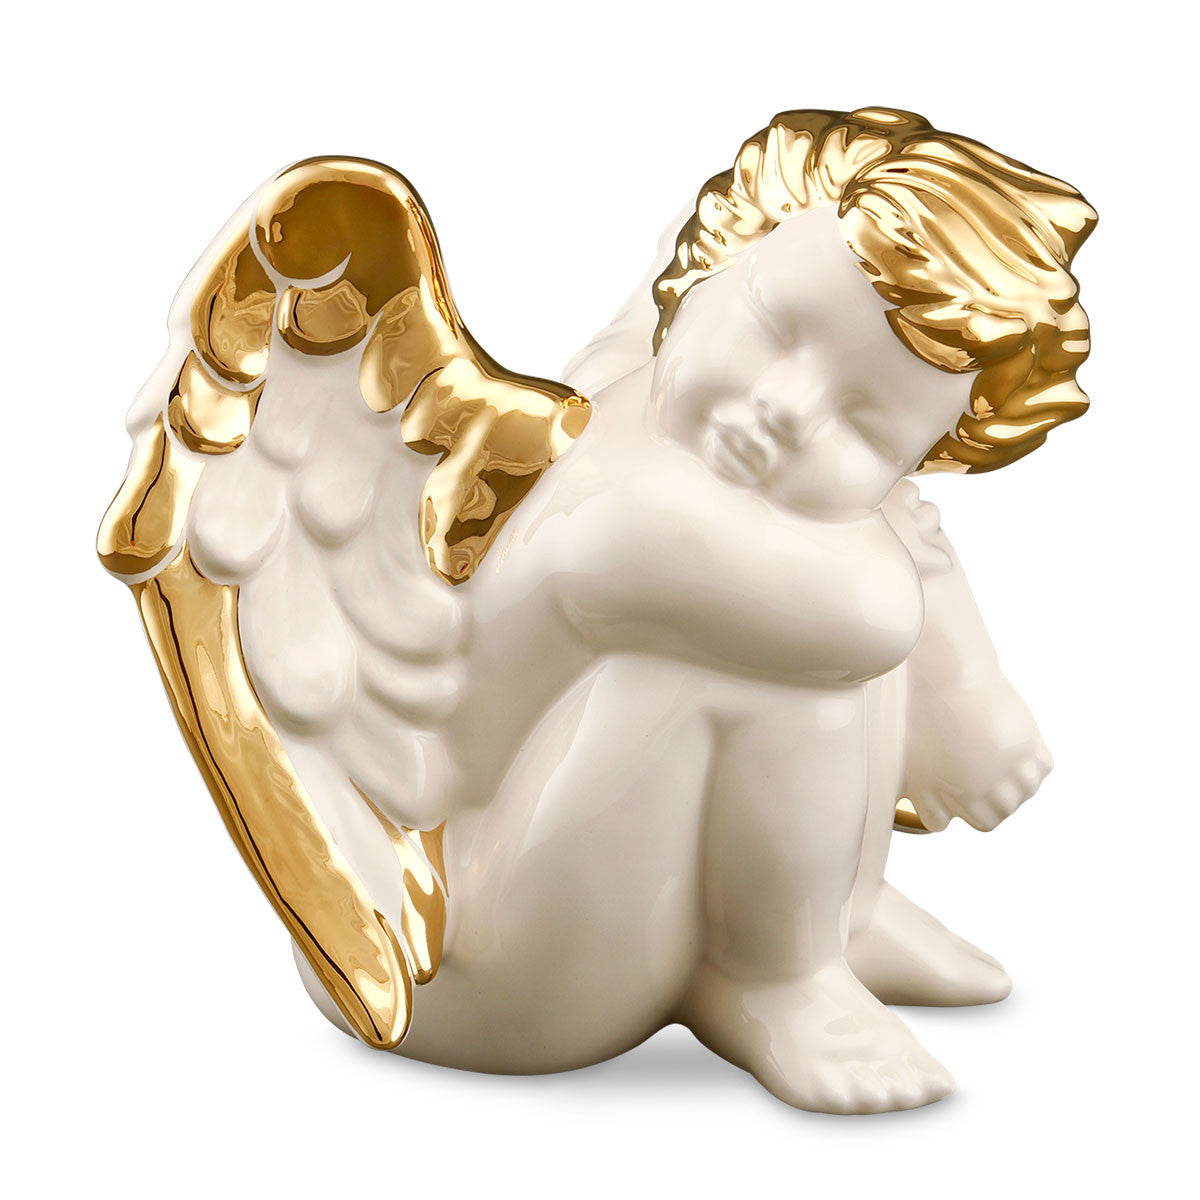 Lovely ceramic angel, decorative objects and figurines